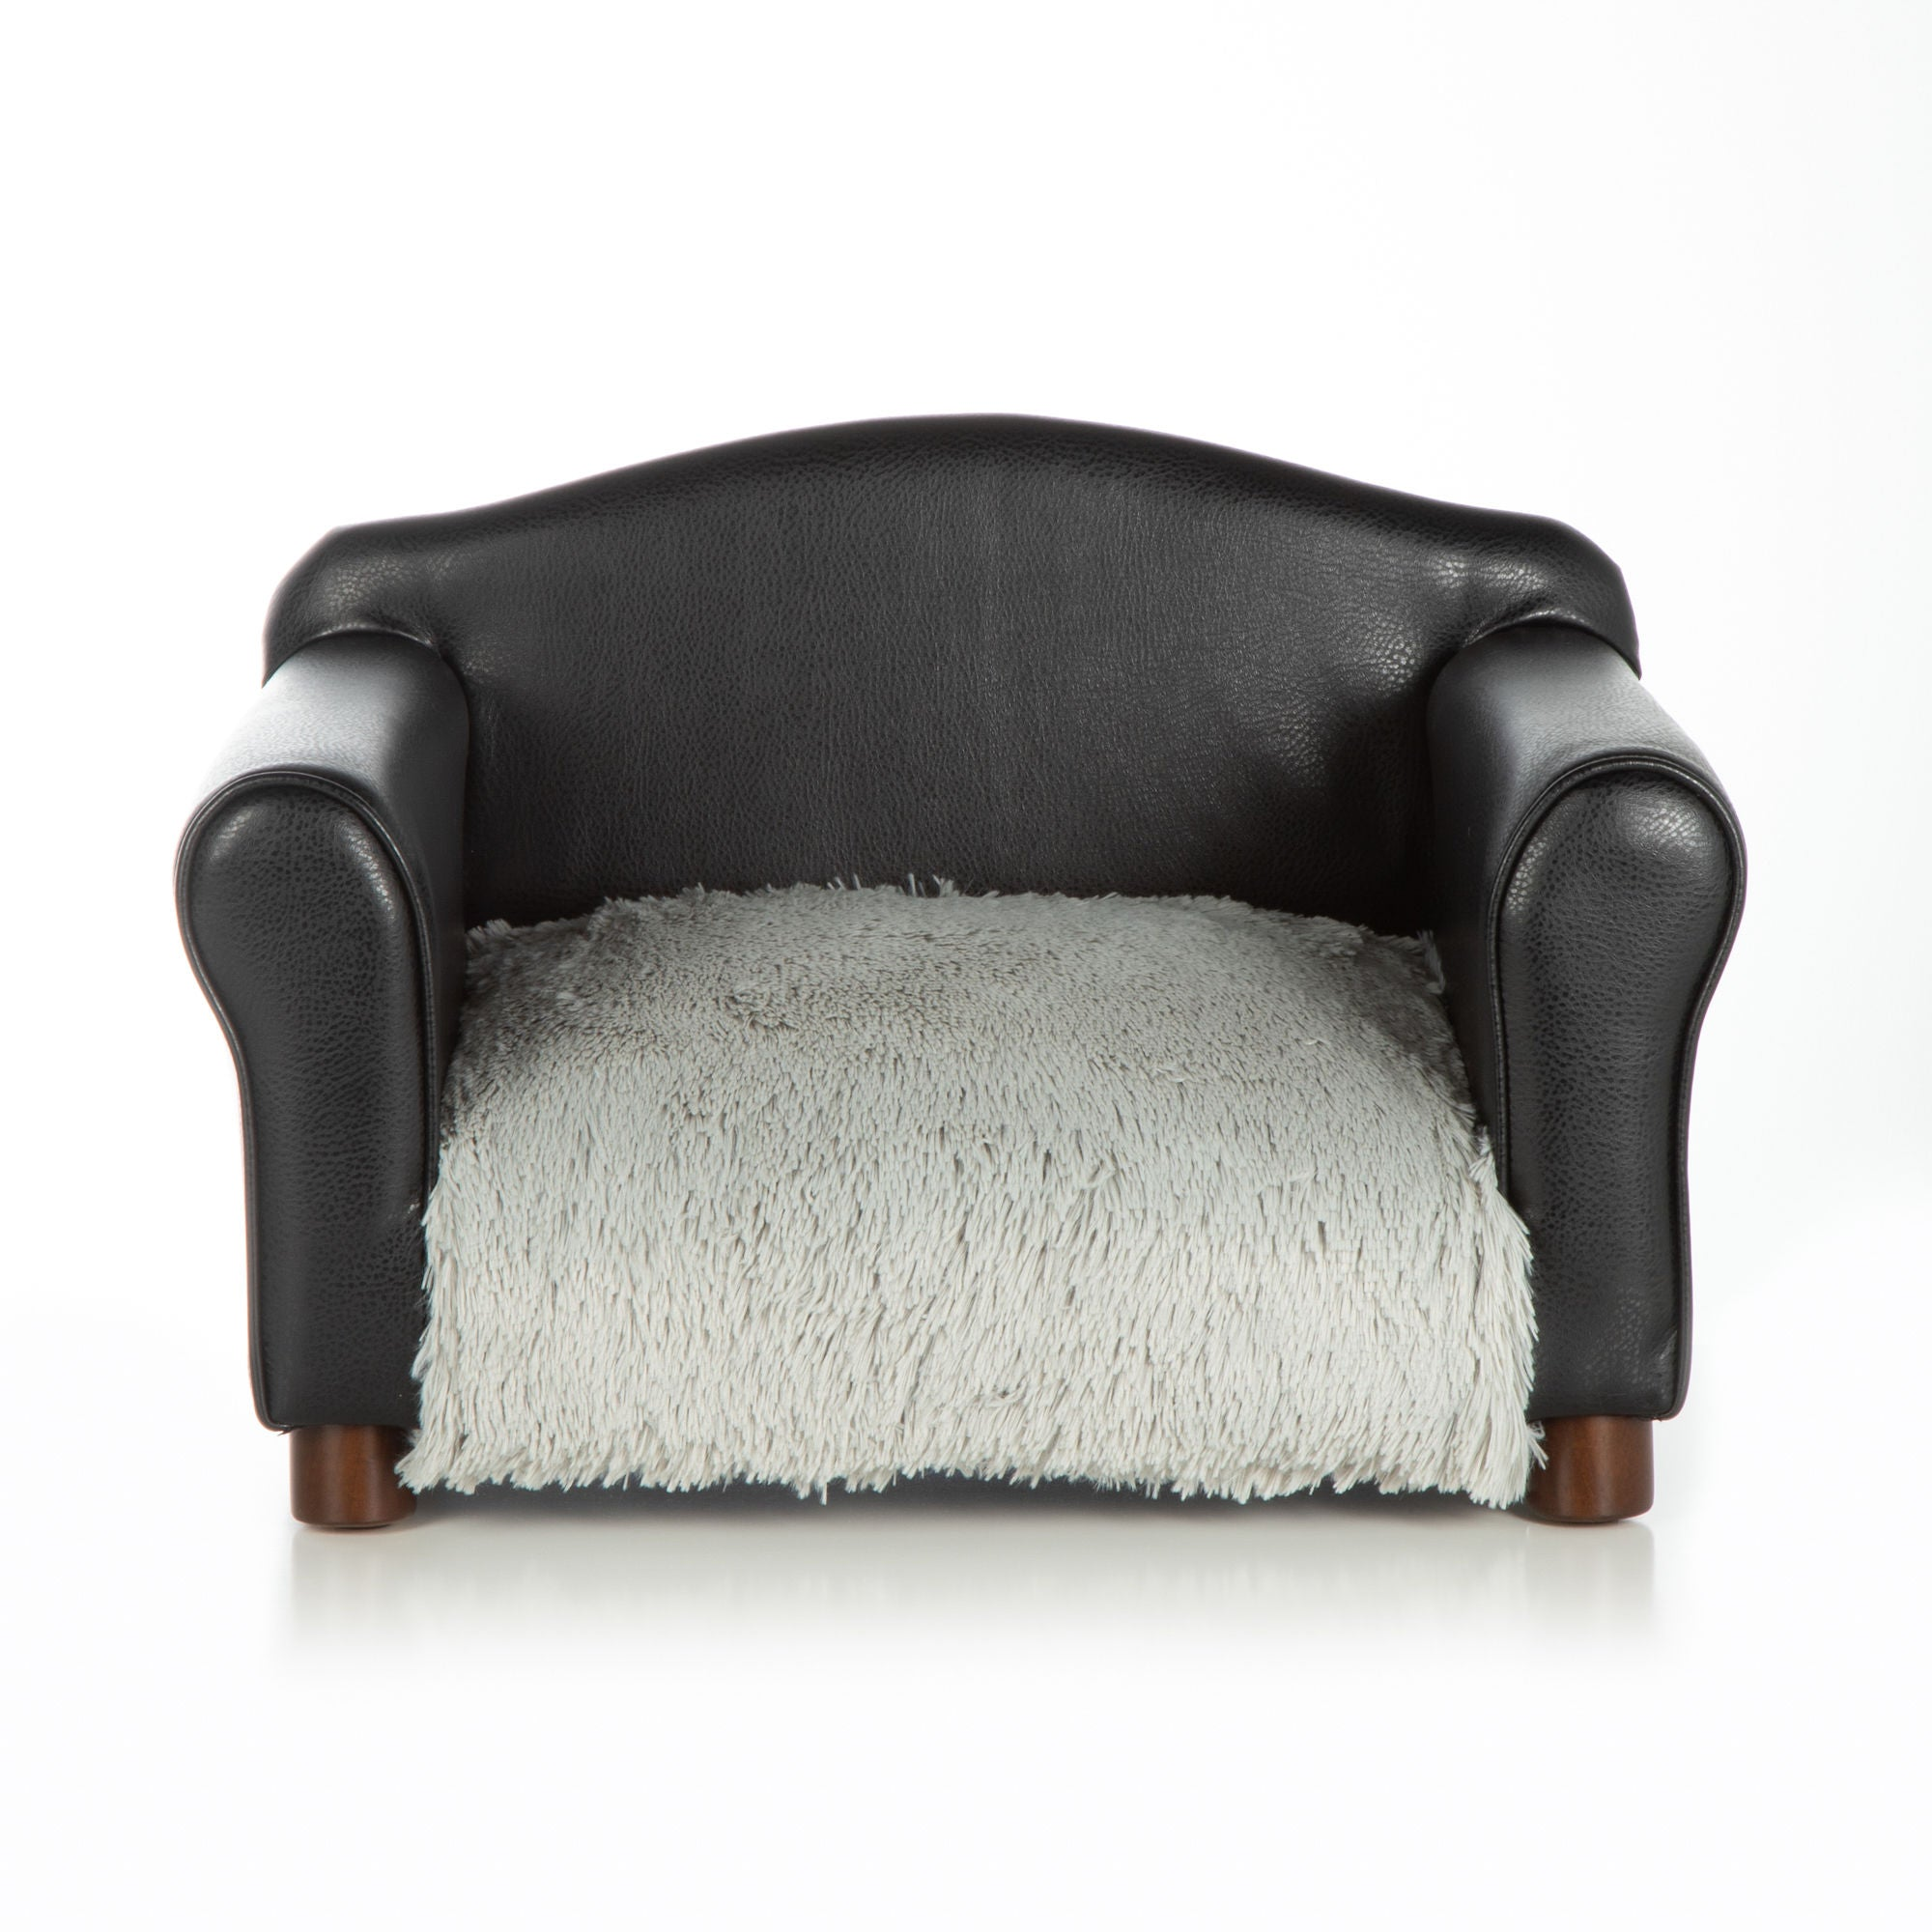 Dog Bed Black Chair Orthopedic Grey Shaggy Cushion by Club Nine Pets